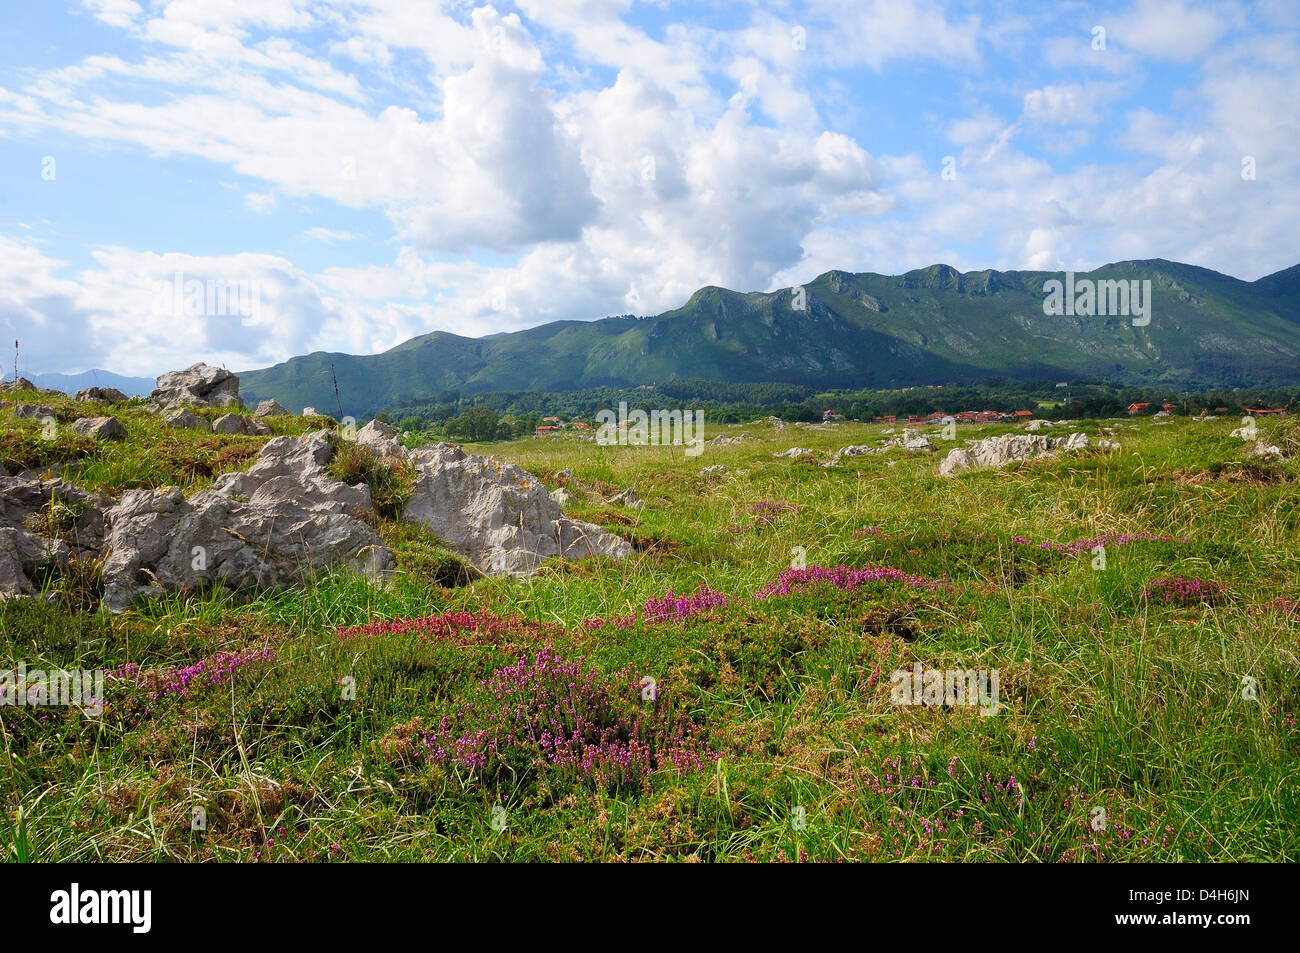 Mediterranean heather flowering with Picos de Europa mountains in the background, Ribadesella, Asturias, Spain - Stock Image